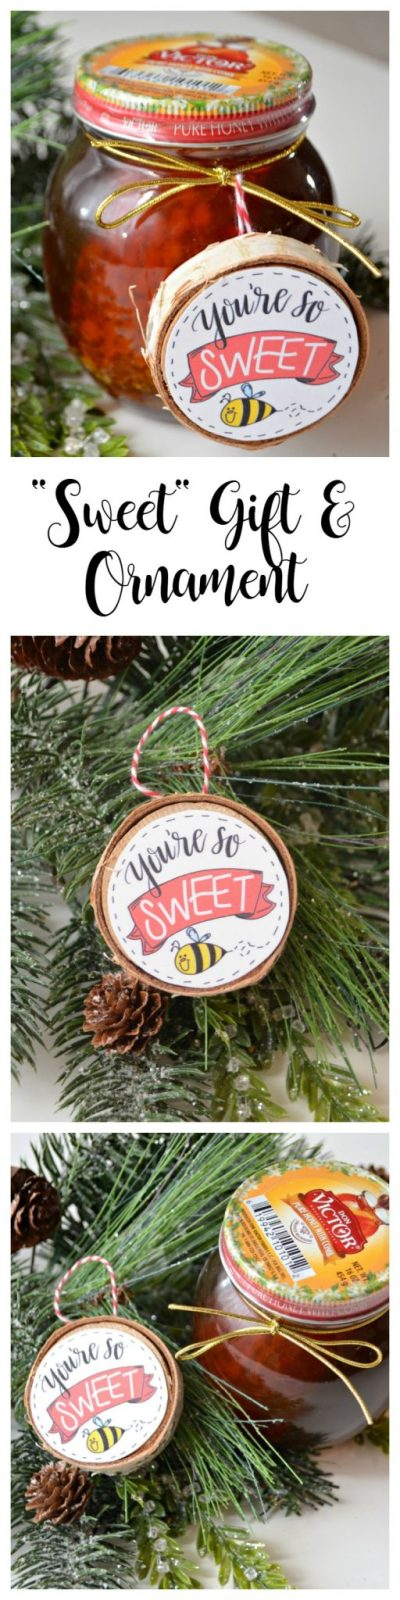 Honey and Ornament Gift DIY